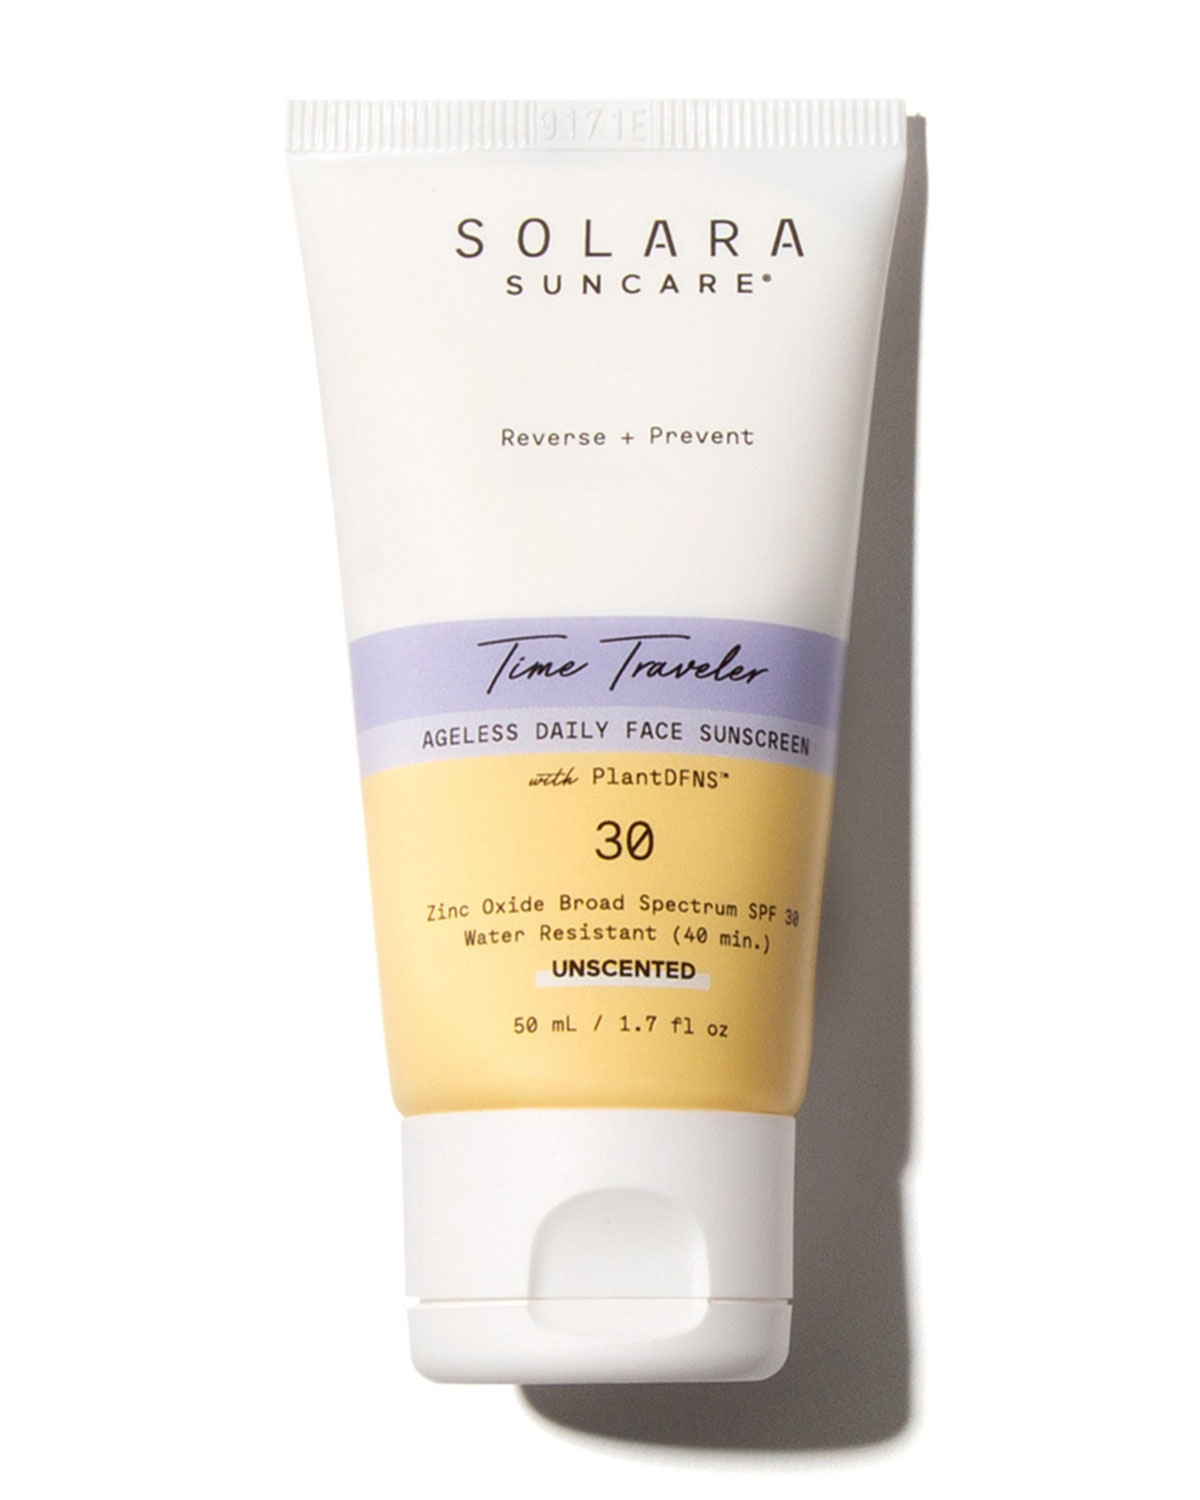 Solara Suncare Time Traveler Ageless Daily Face Sunscreen, 1.7 oz. / 50 mL